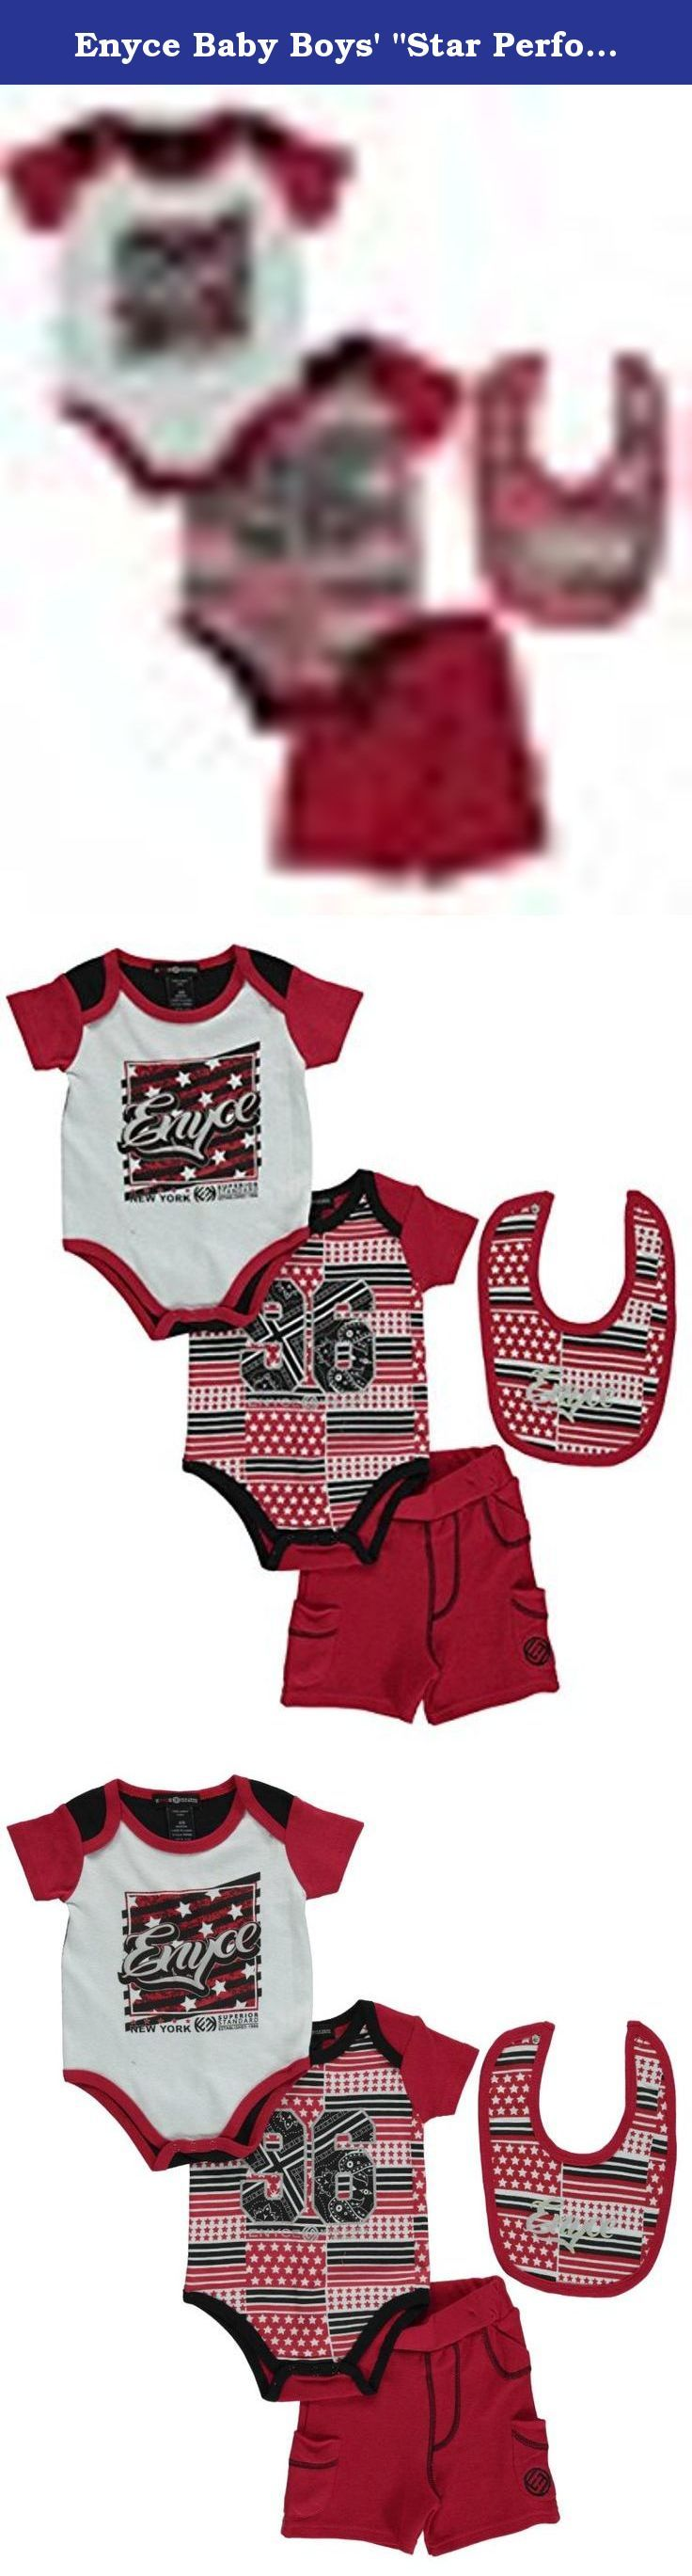 """Enyce Baby Boys' """"Star Performer"""" 4-Piece Set - red/white, 3 - 6 months. Push his everyday look to the next level with the classic urban style of this Enyce outfit. Each piece is soft and kid-friendly. Includes: Bodysuit 1 (100% Cotton) Bodysuit 2 (100% Cotton) Shorts (100% Cotton) Bib (100% Cotton) Machine Wash Cold, Inside Out Imported."""